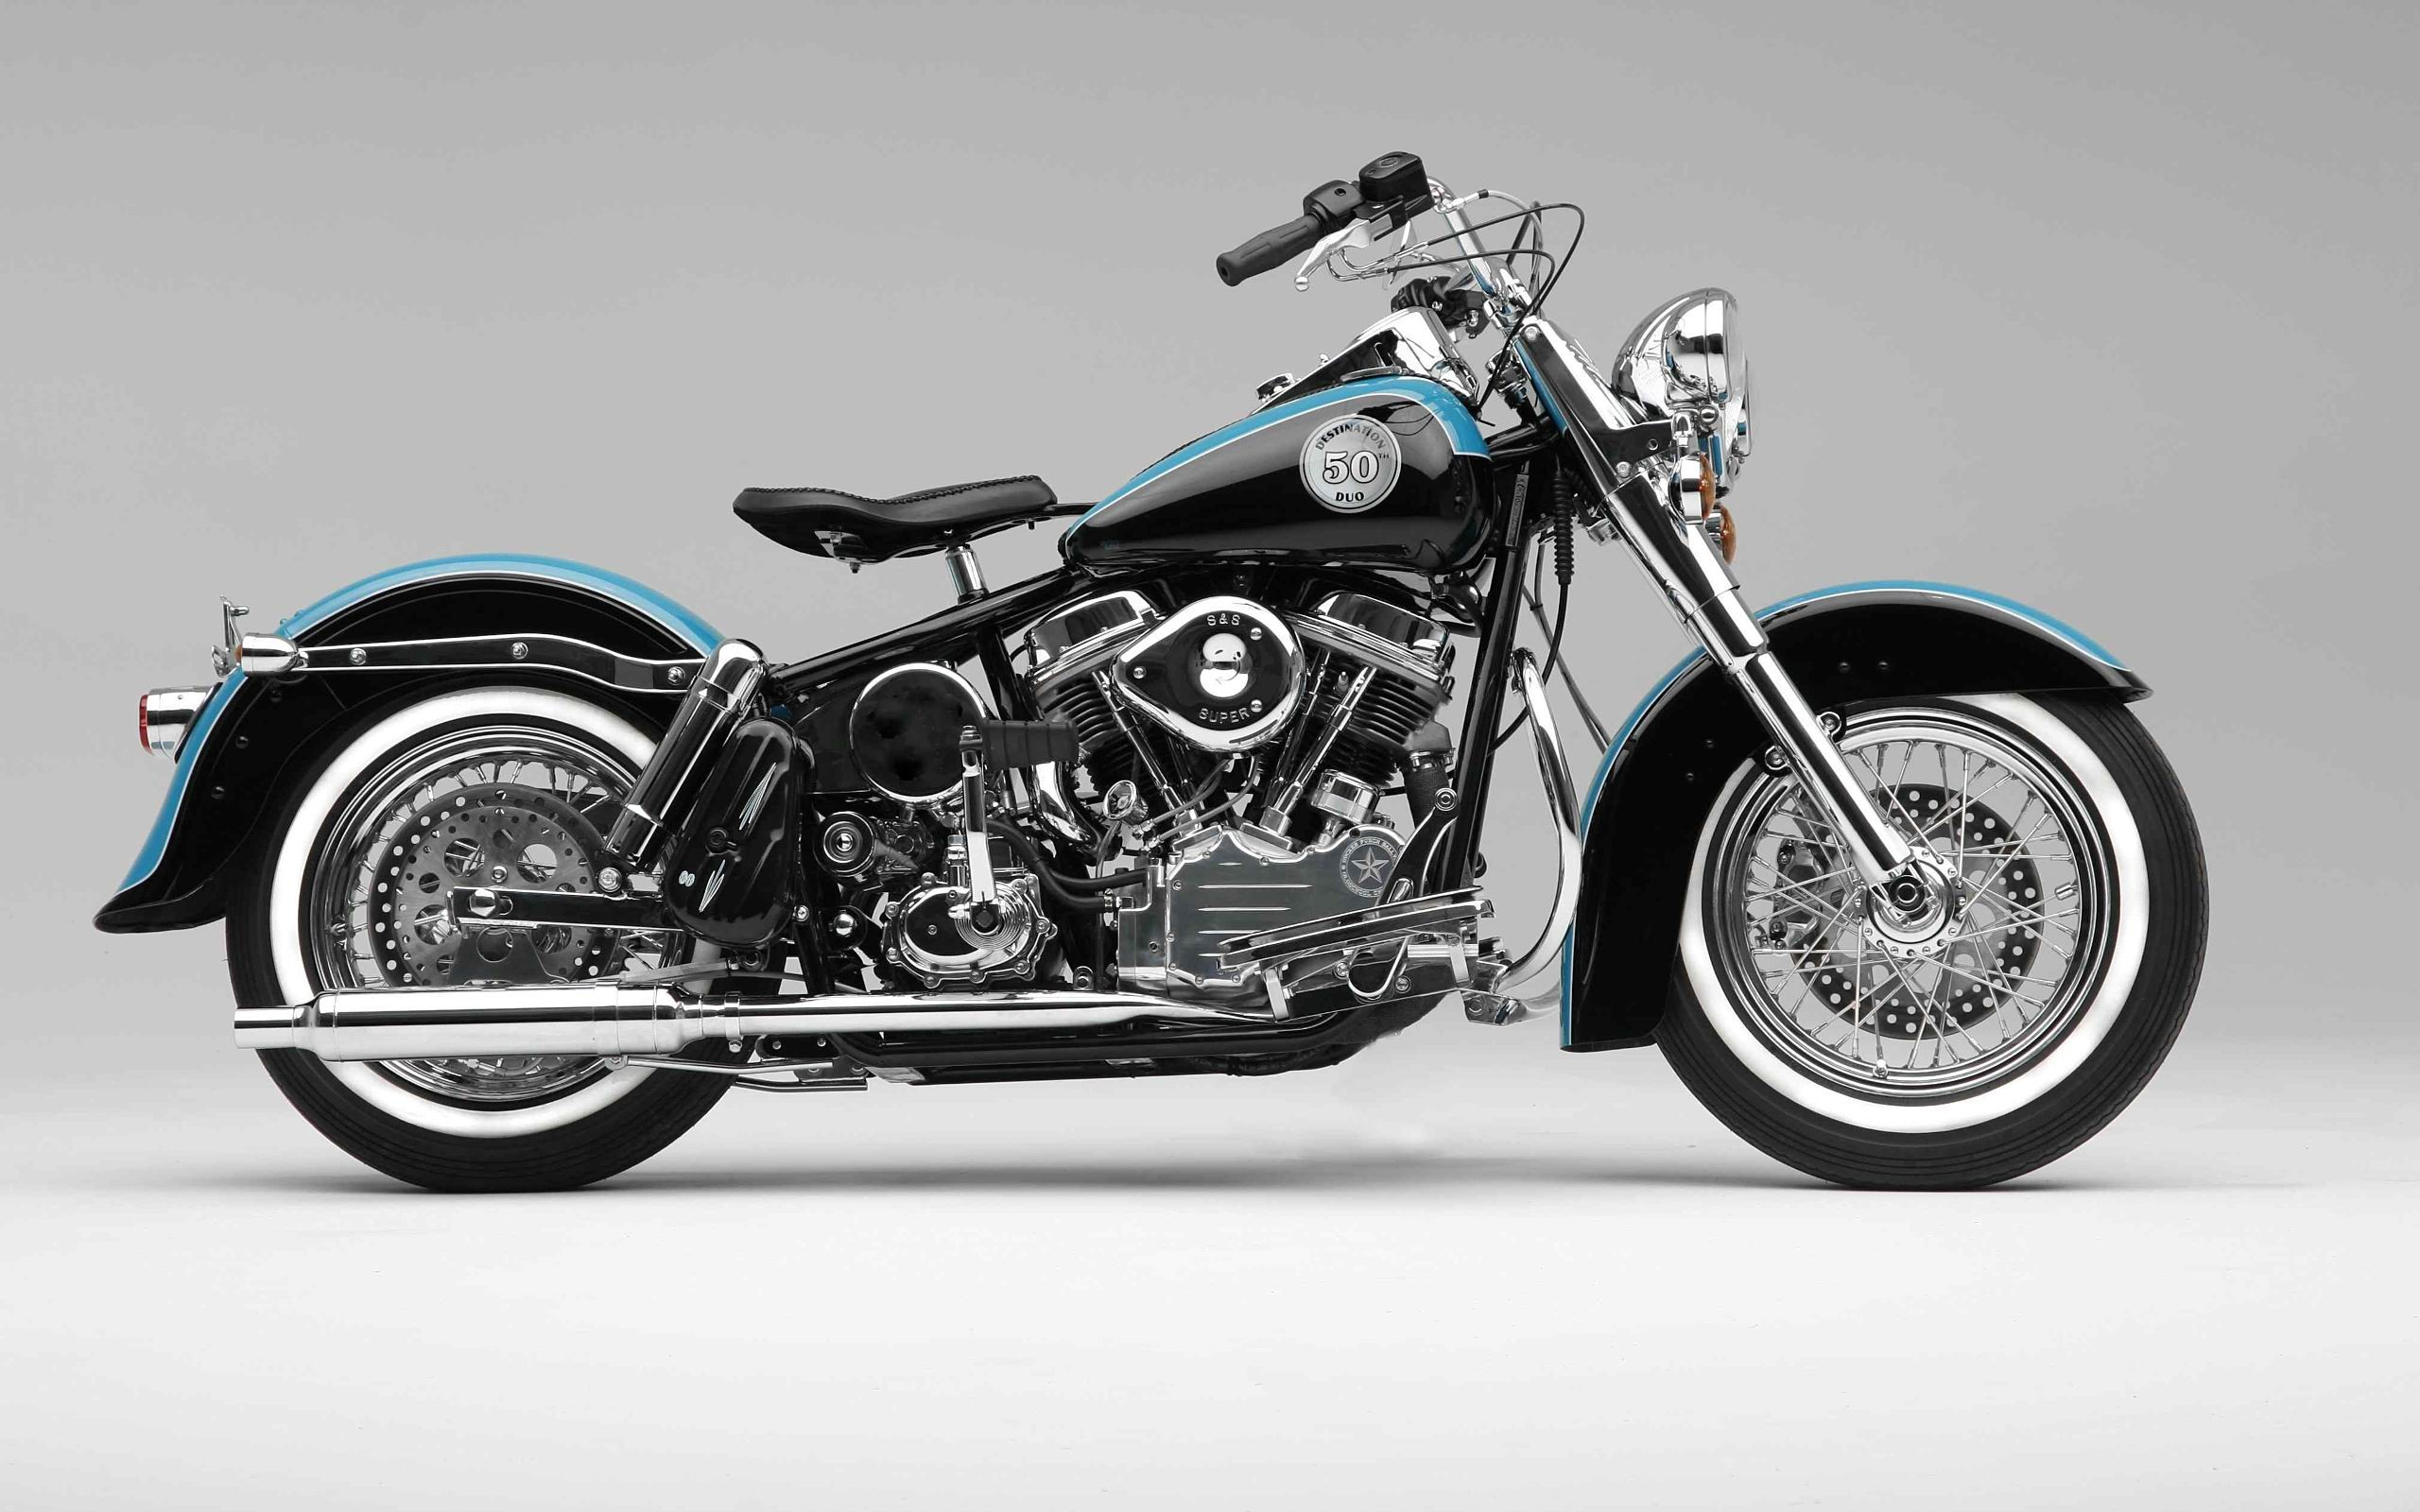 Harley davidson bikes wallpapers 76 images 1920x1080 full hd hd tablet 10 tablet 7 wallpaper name harley davidson hd wallpaper categories bikes voltagebd Choice Image